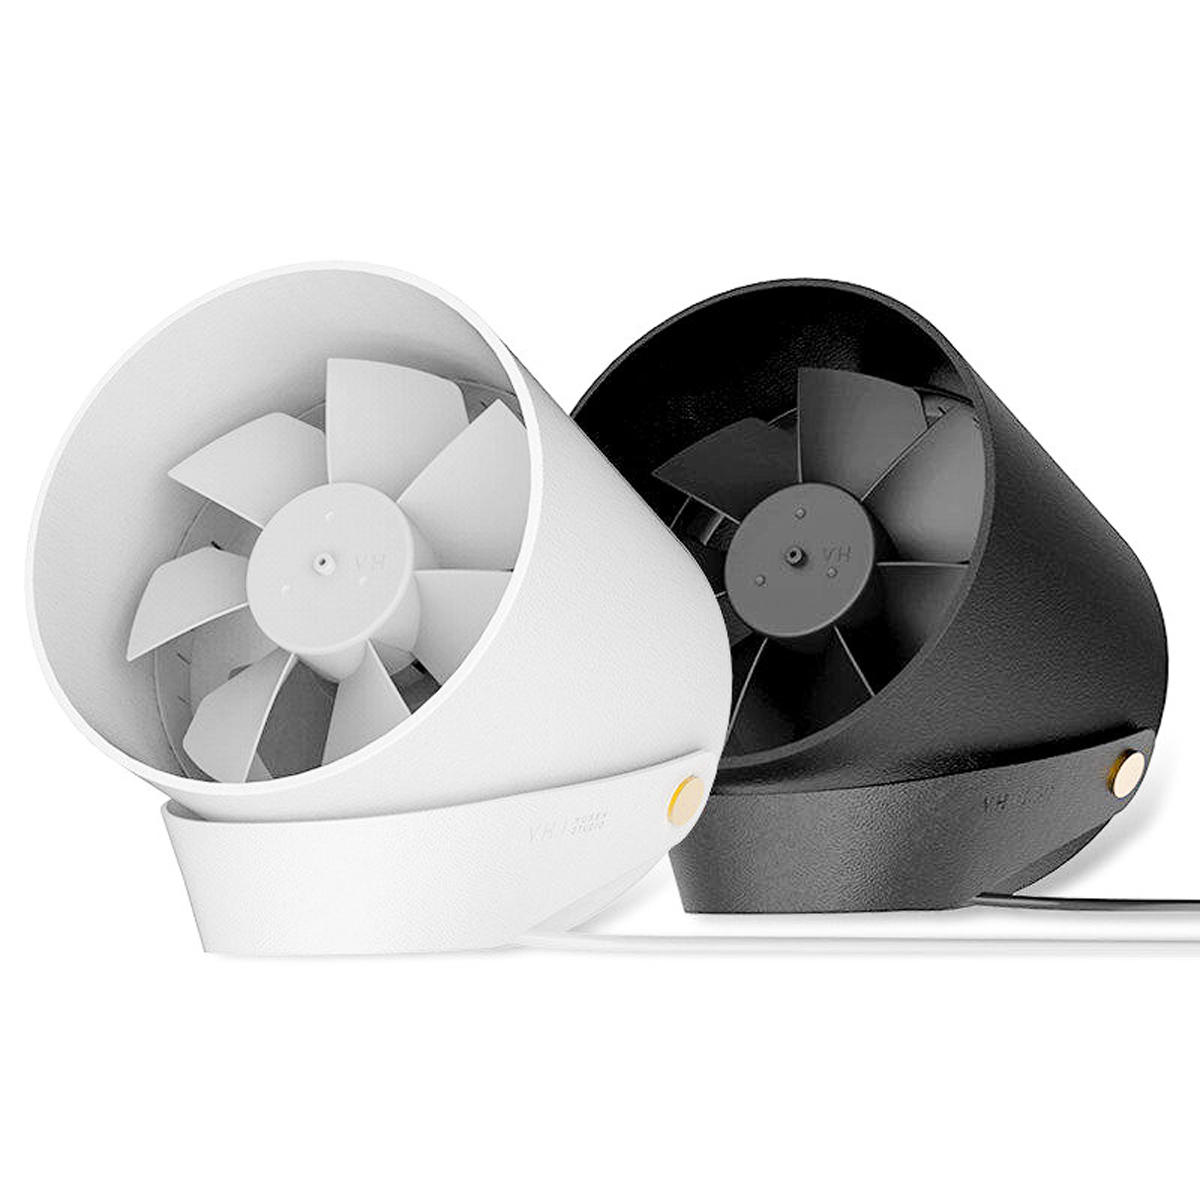 Xiaomi VH DC 5V Portable Mini USB Handheld Desktop Fan 2 Modes Wire Control Switch Wind Cooler